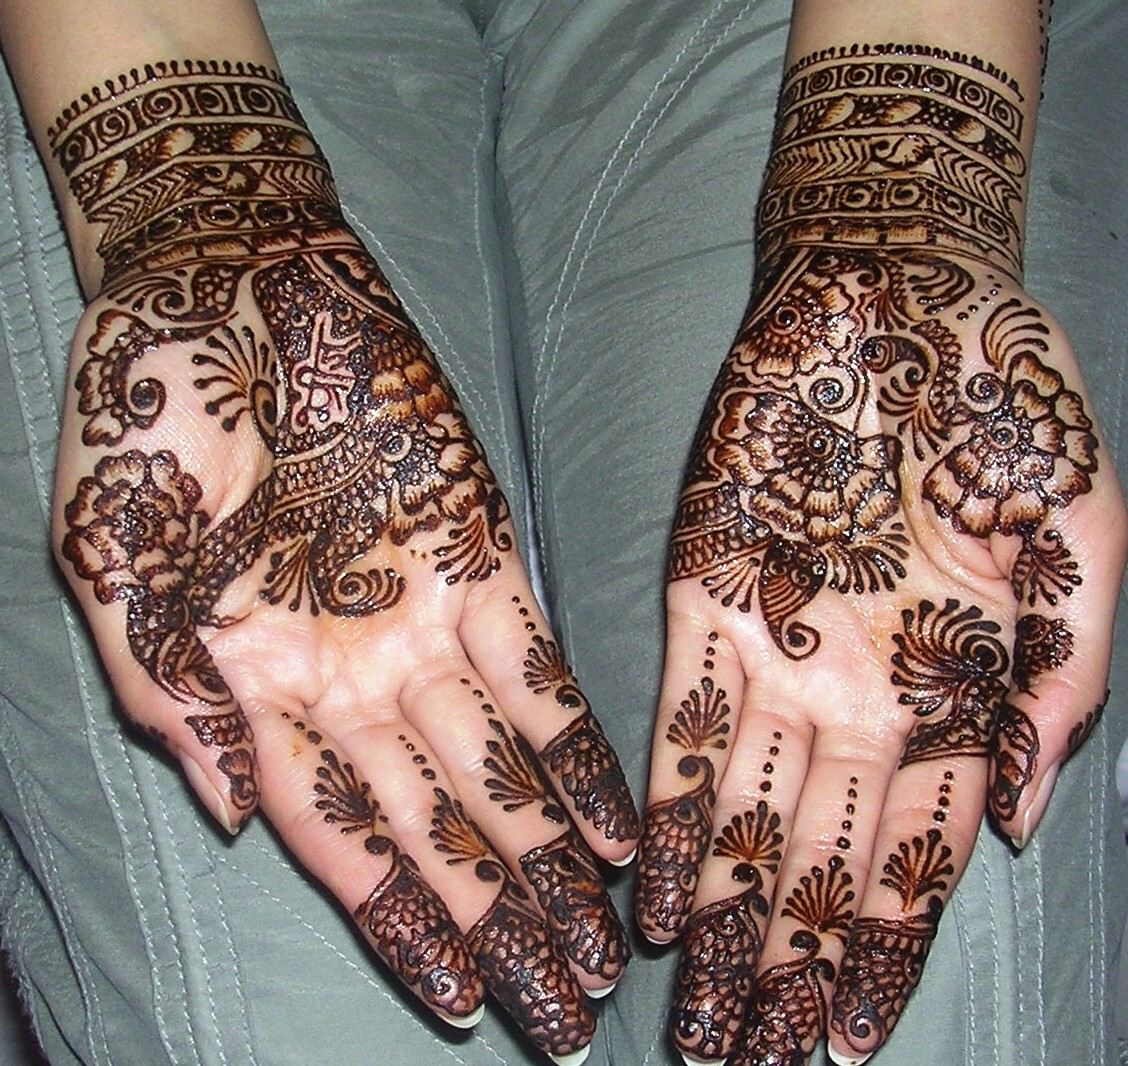 HD Wallpepars Mehndi HD Wallpapers